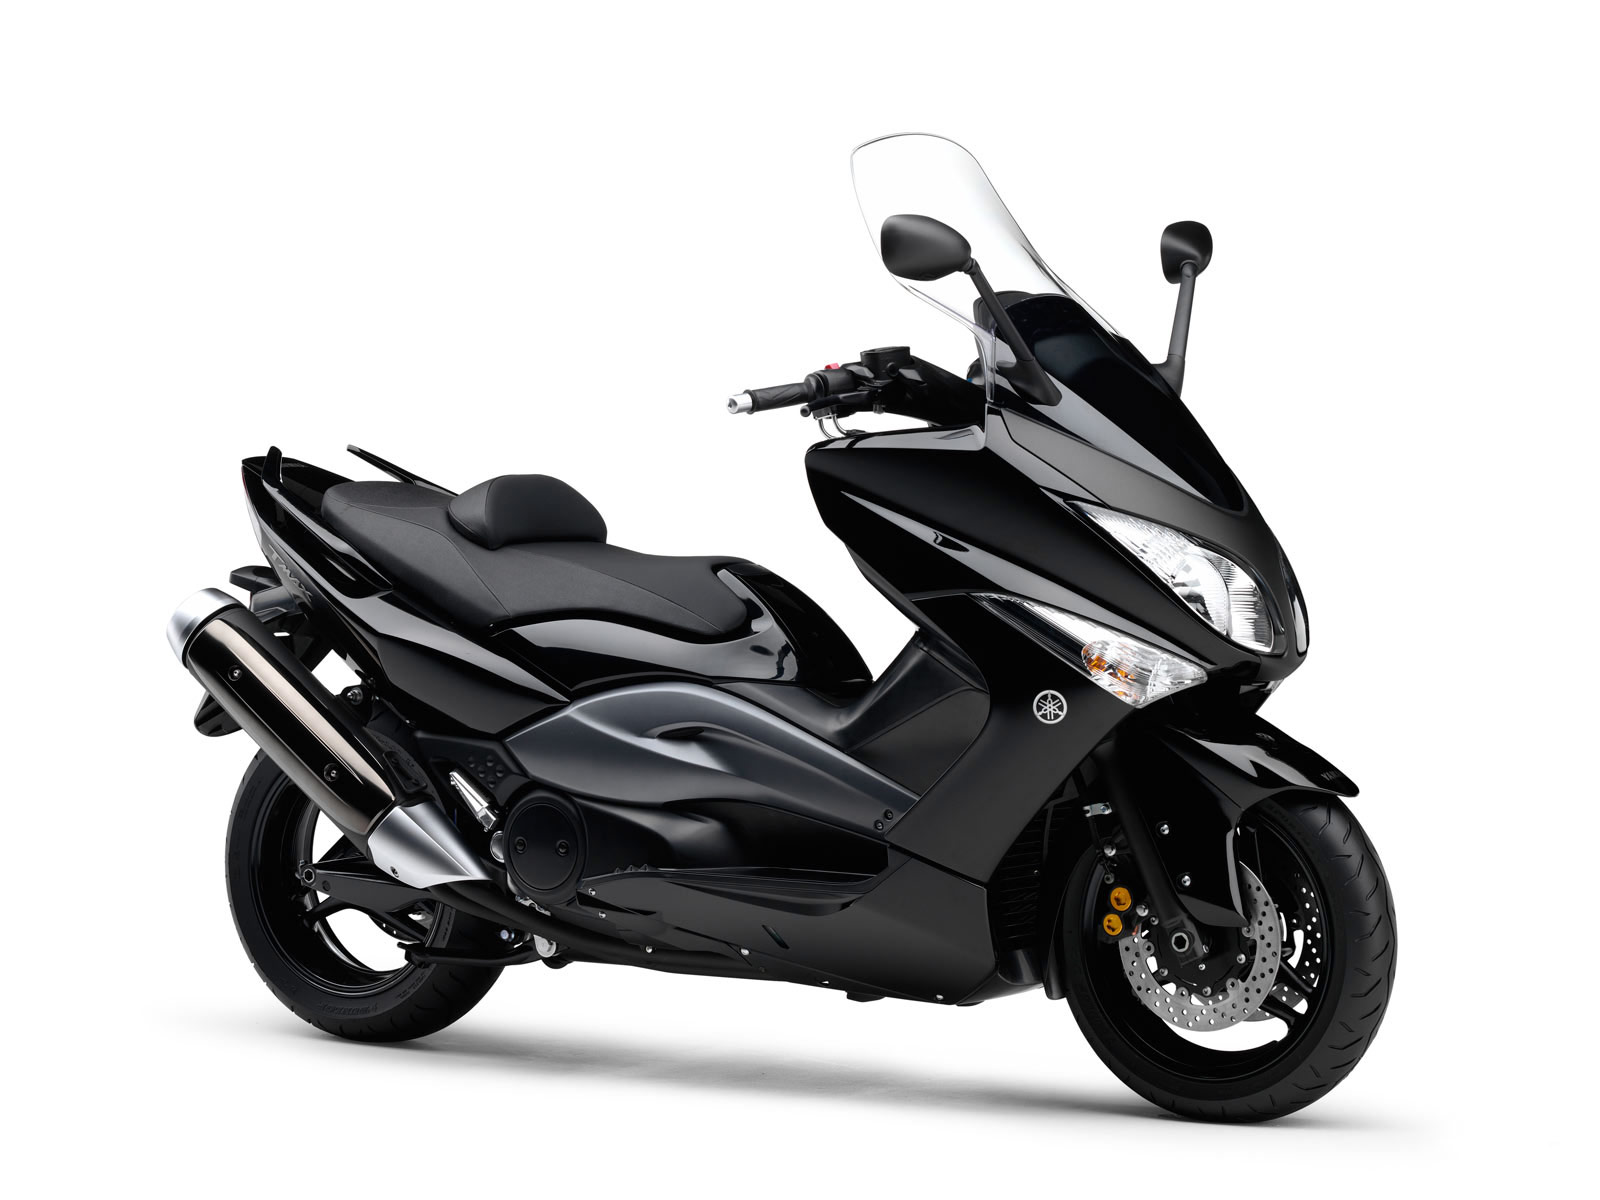 2008 yamaha tmax scooter pictures insurance specs. Black Bedroom Furniture Sets. Home Design Ideas